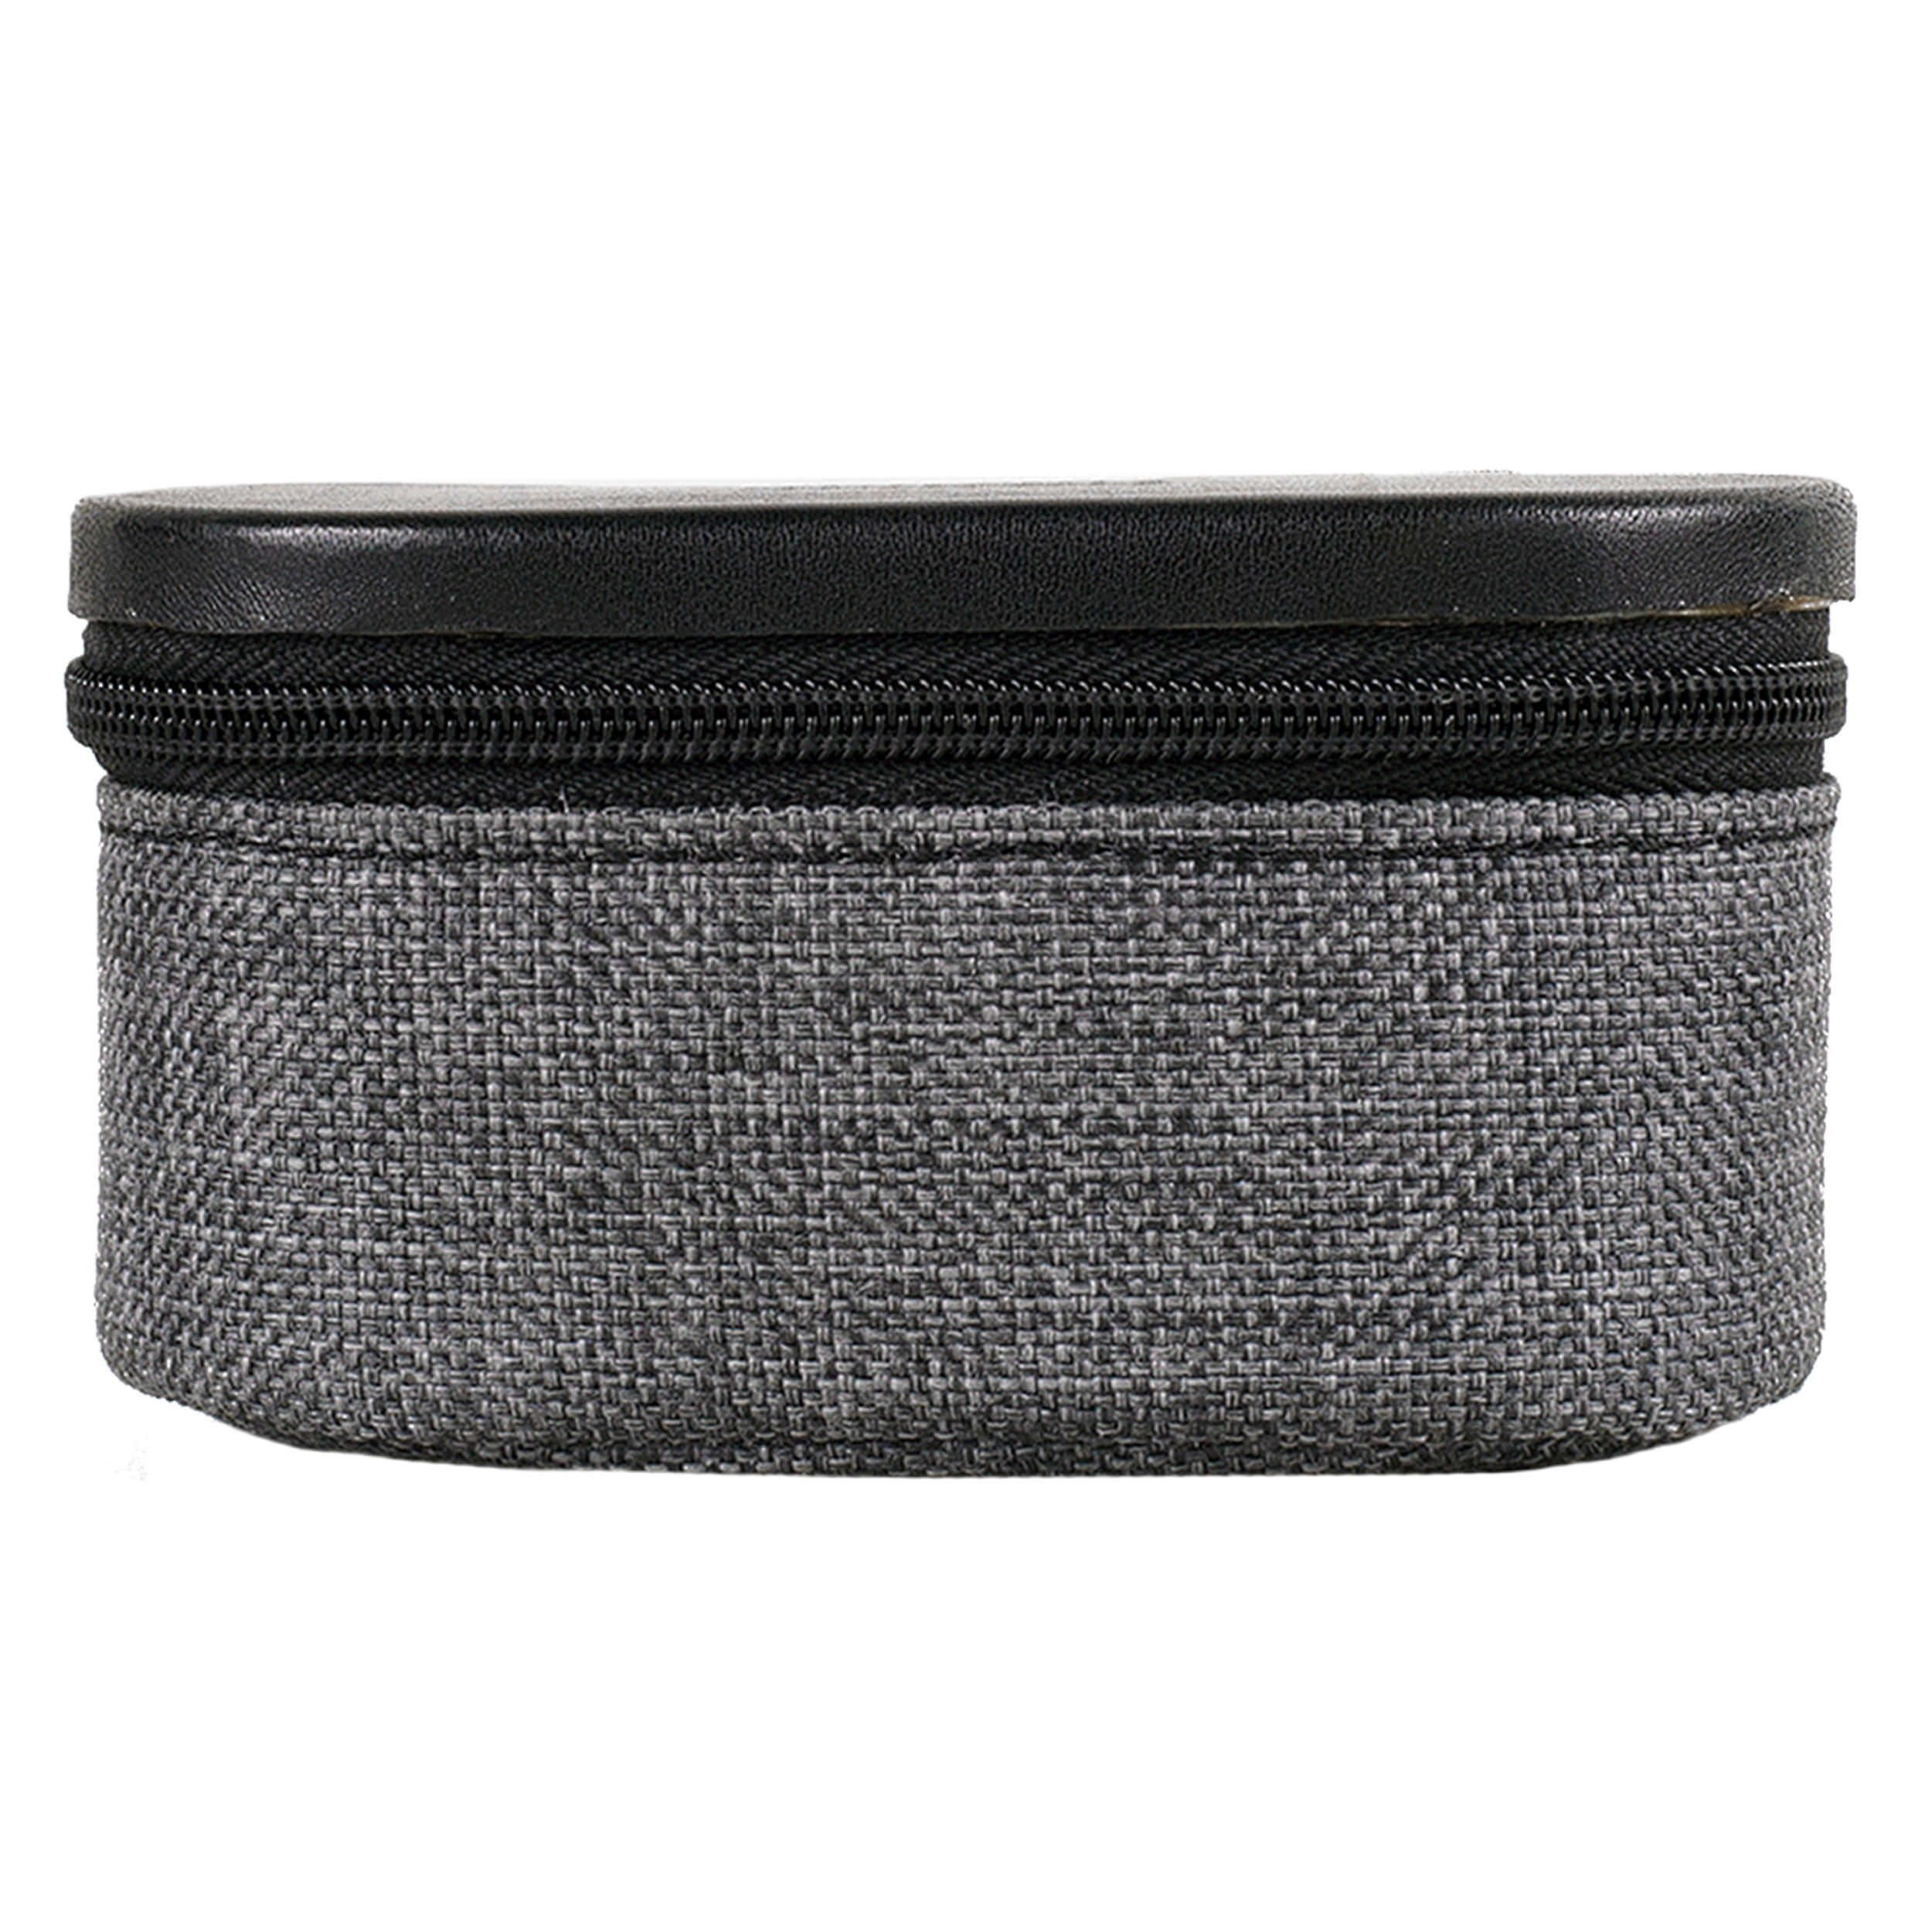 Moment - Lens Pouch - Carry 2 Small Lenses by Moment